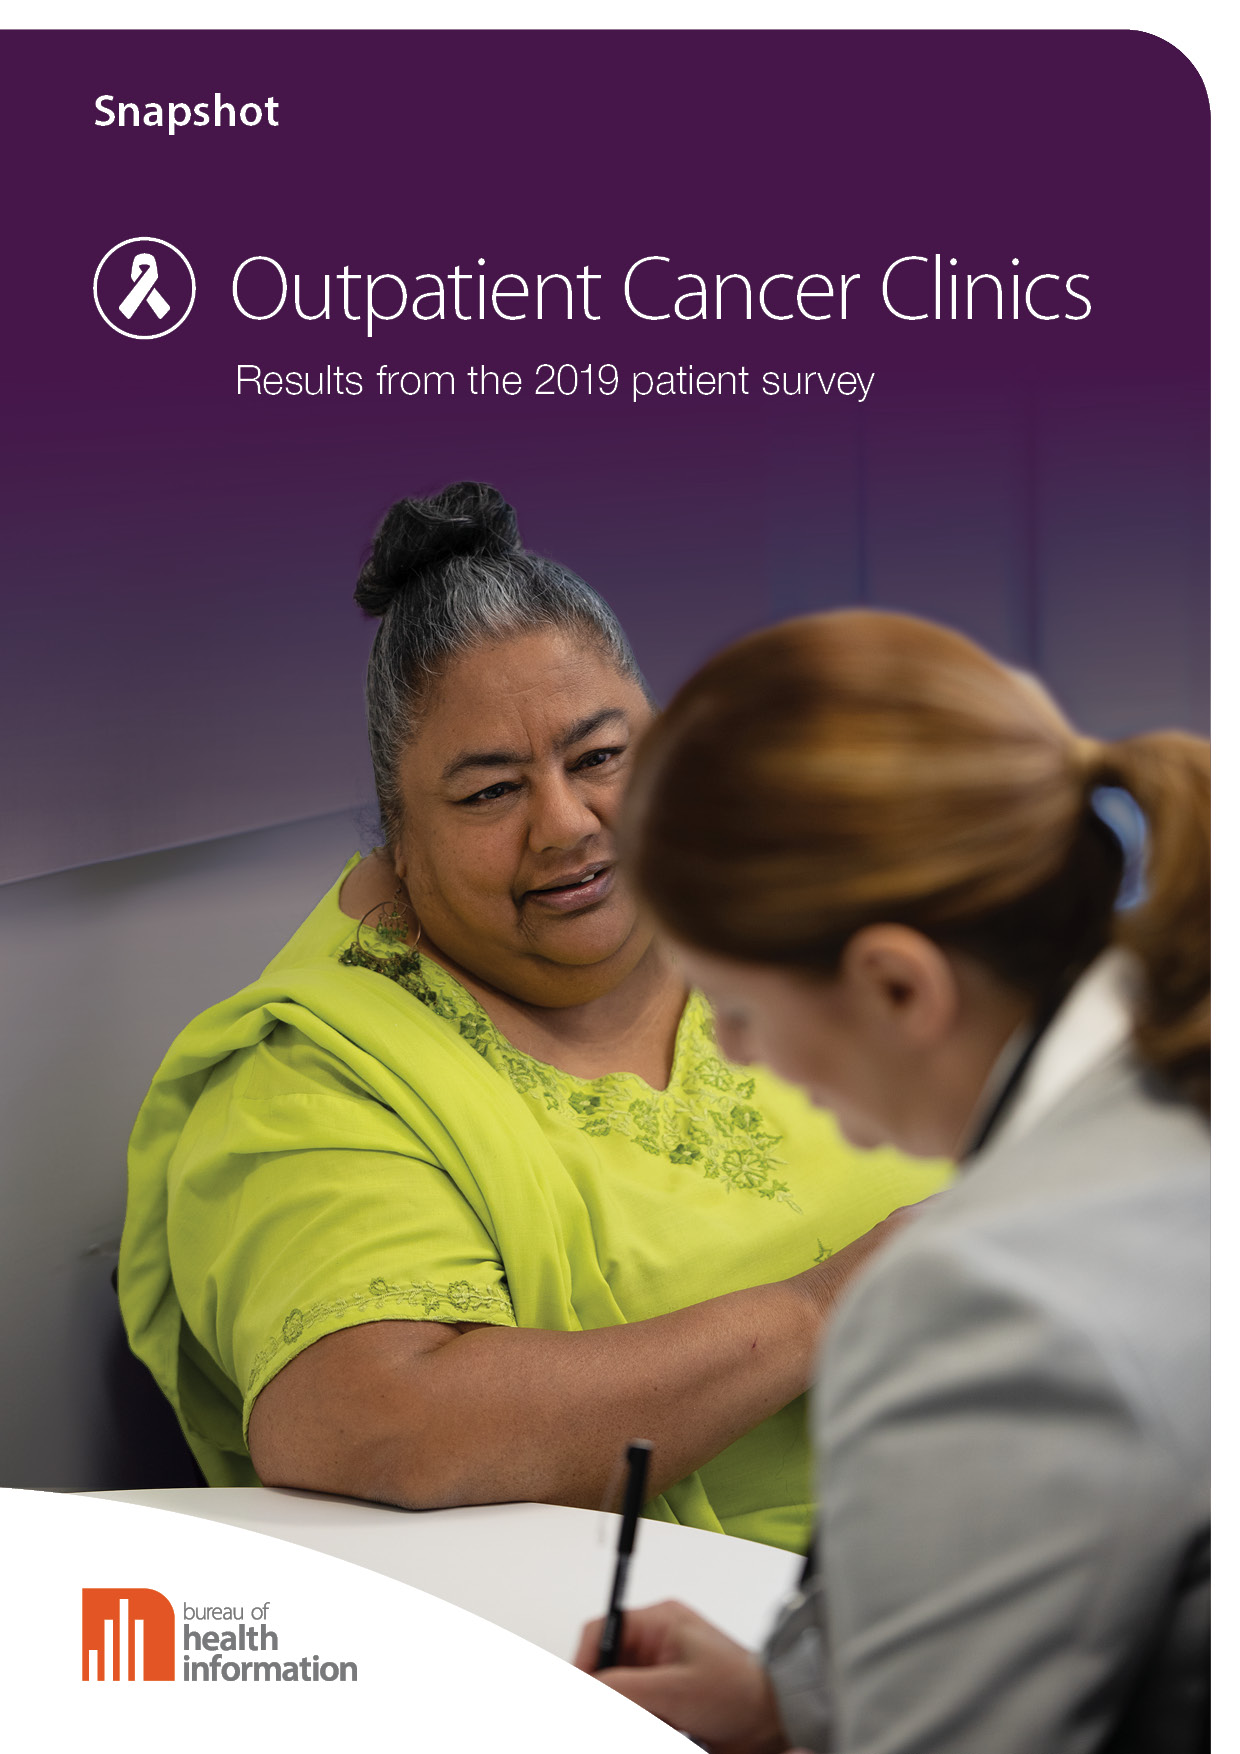 Outpatient Cancer Clinics Survey 2019